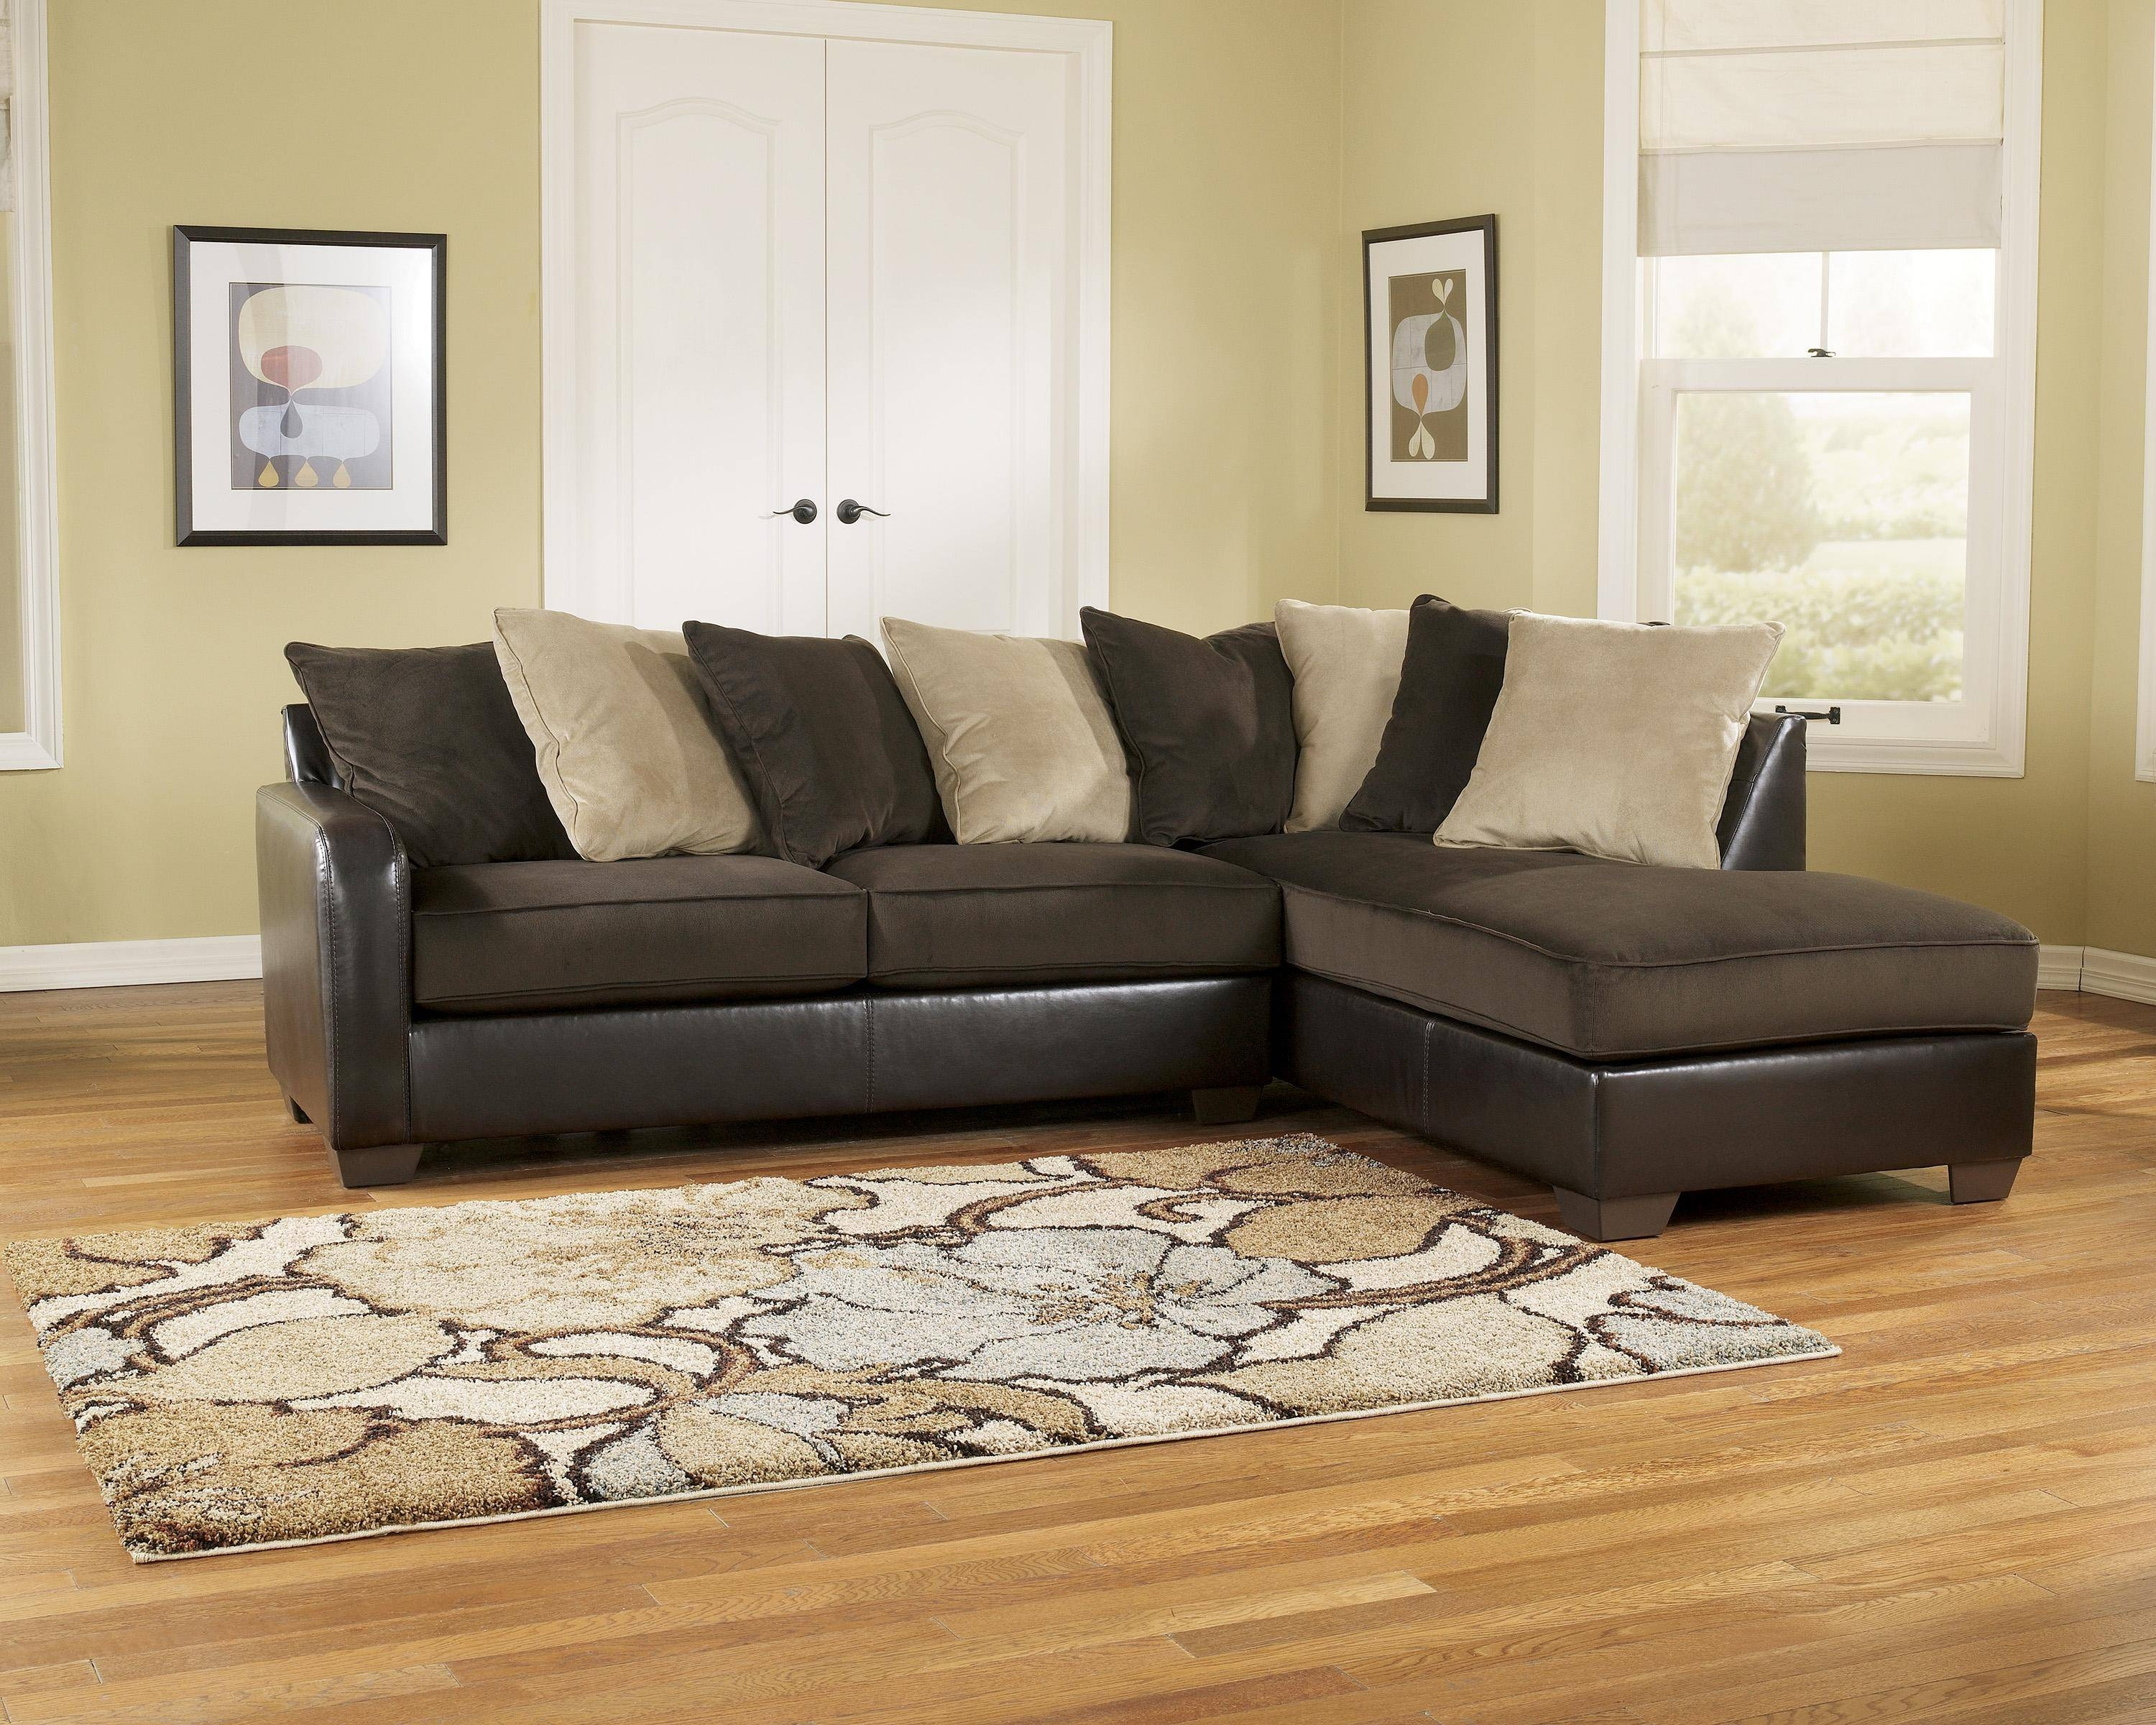 design furniture gray durablend right sectional w item leather products ashley chaise by signature alliston